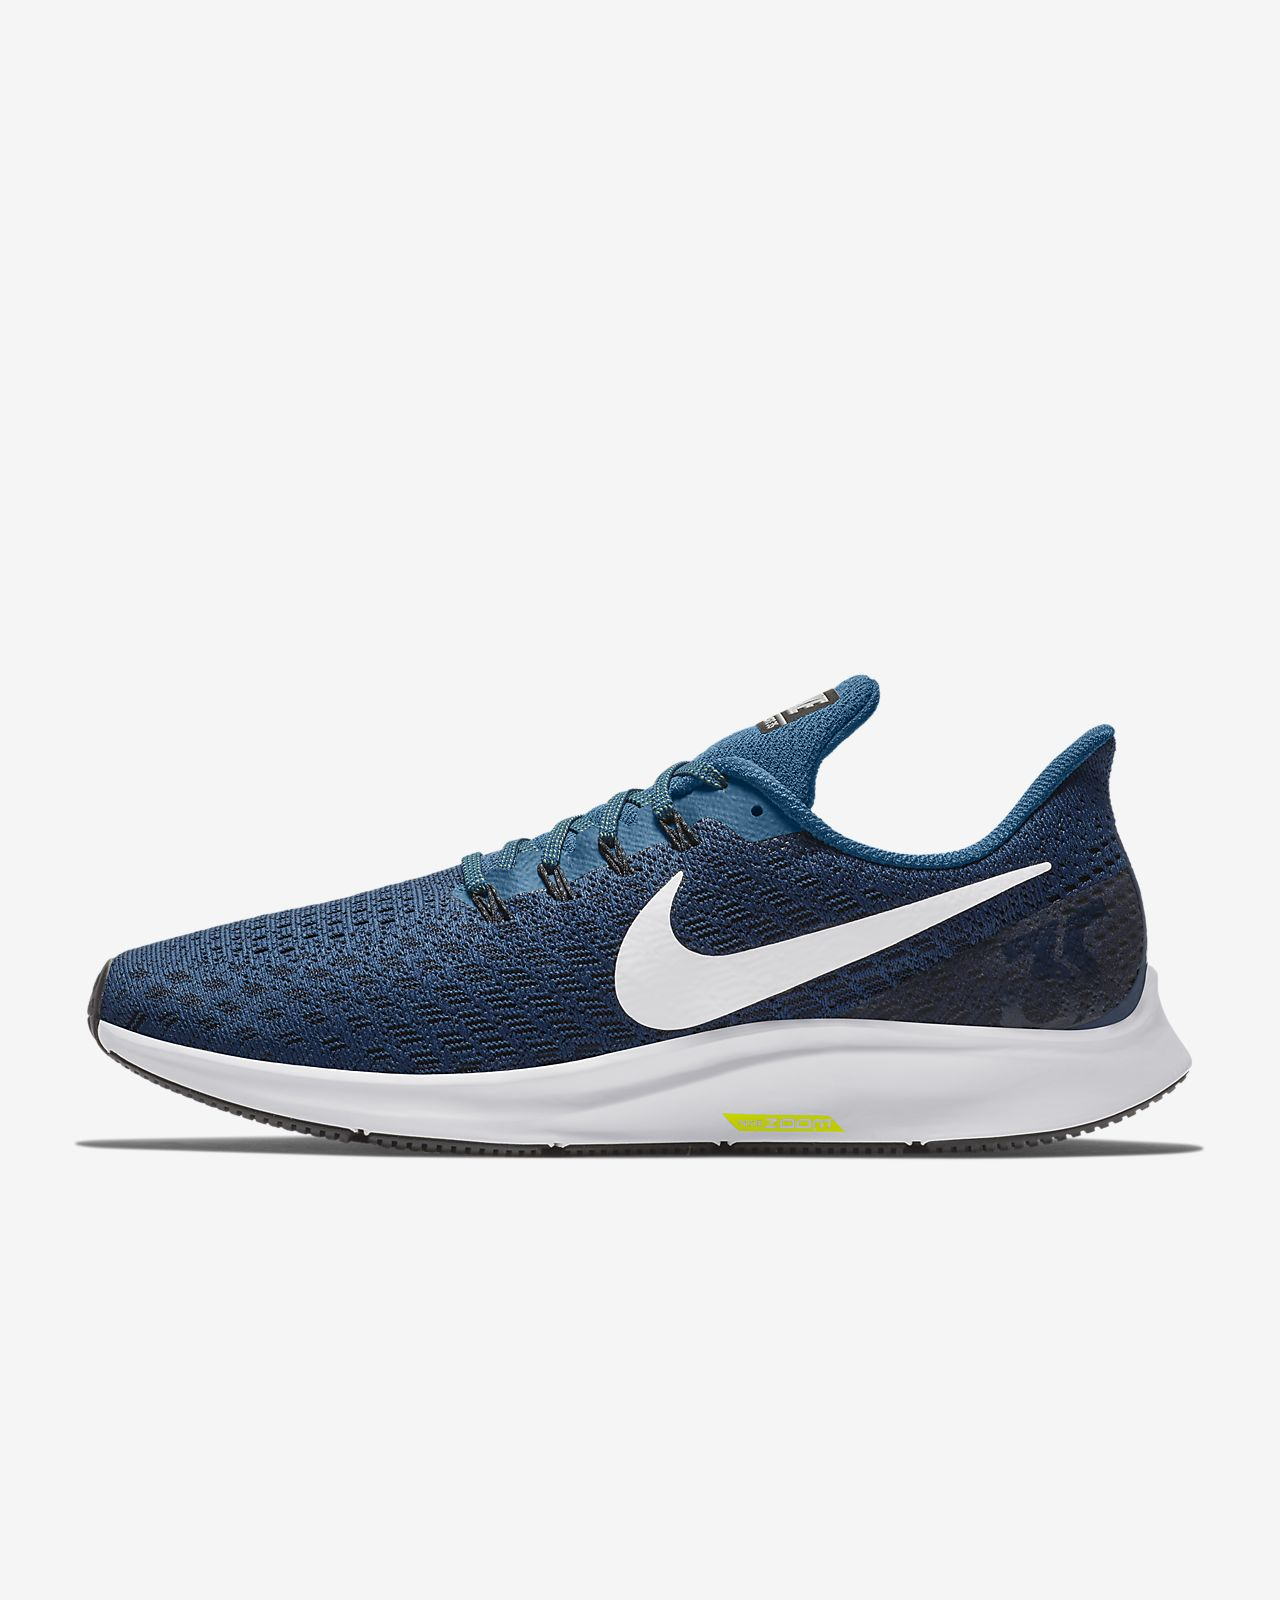 a4ccf62488803 Nike Air Zoom Pegasus 35 Men s Running Shoe. Nike.com AE